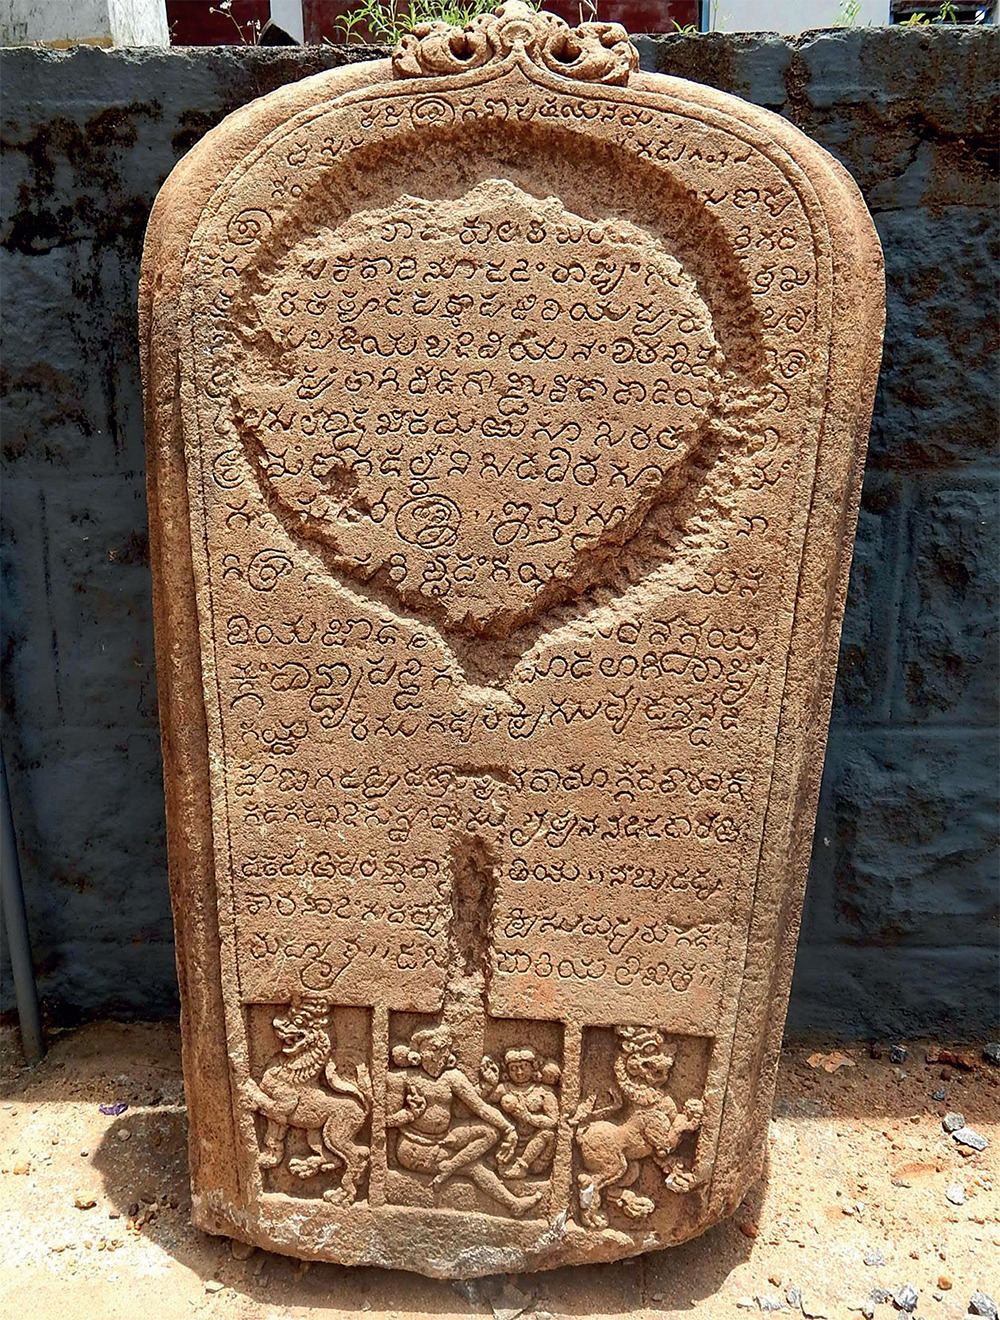 The Inscription which was found at the temple